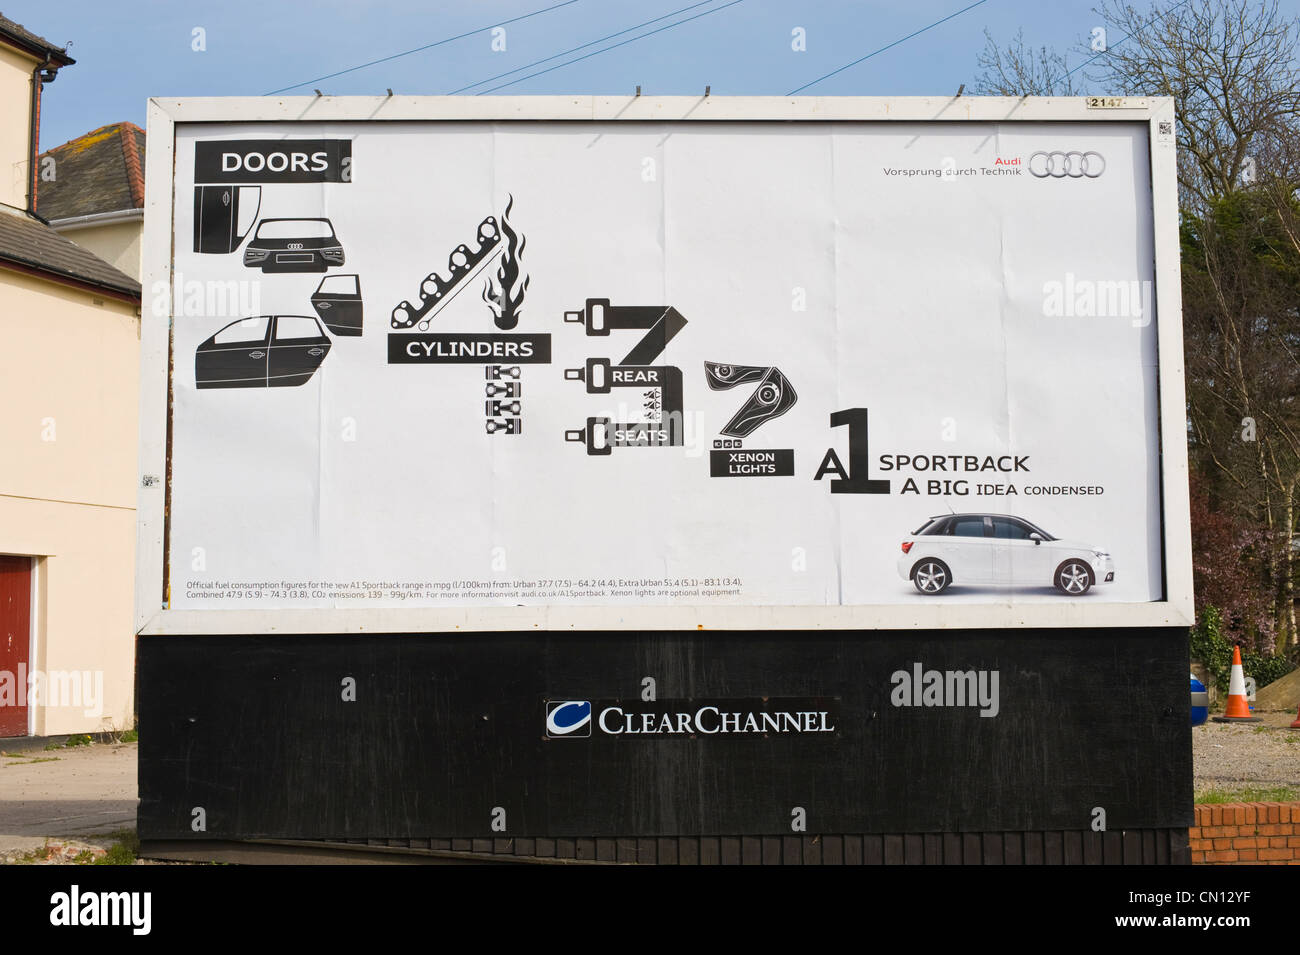 ClearChannel billboard hoarding for Audi cars in Newport South Wales UK - Stock Image